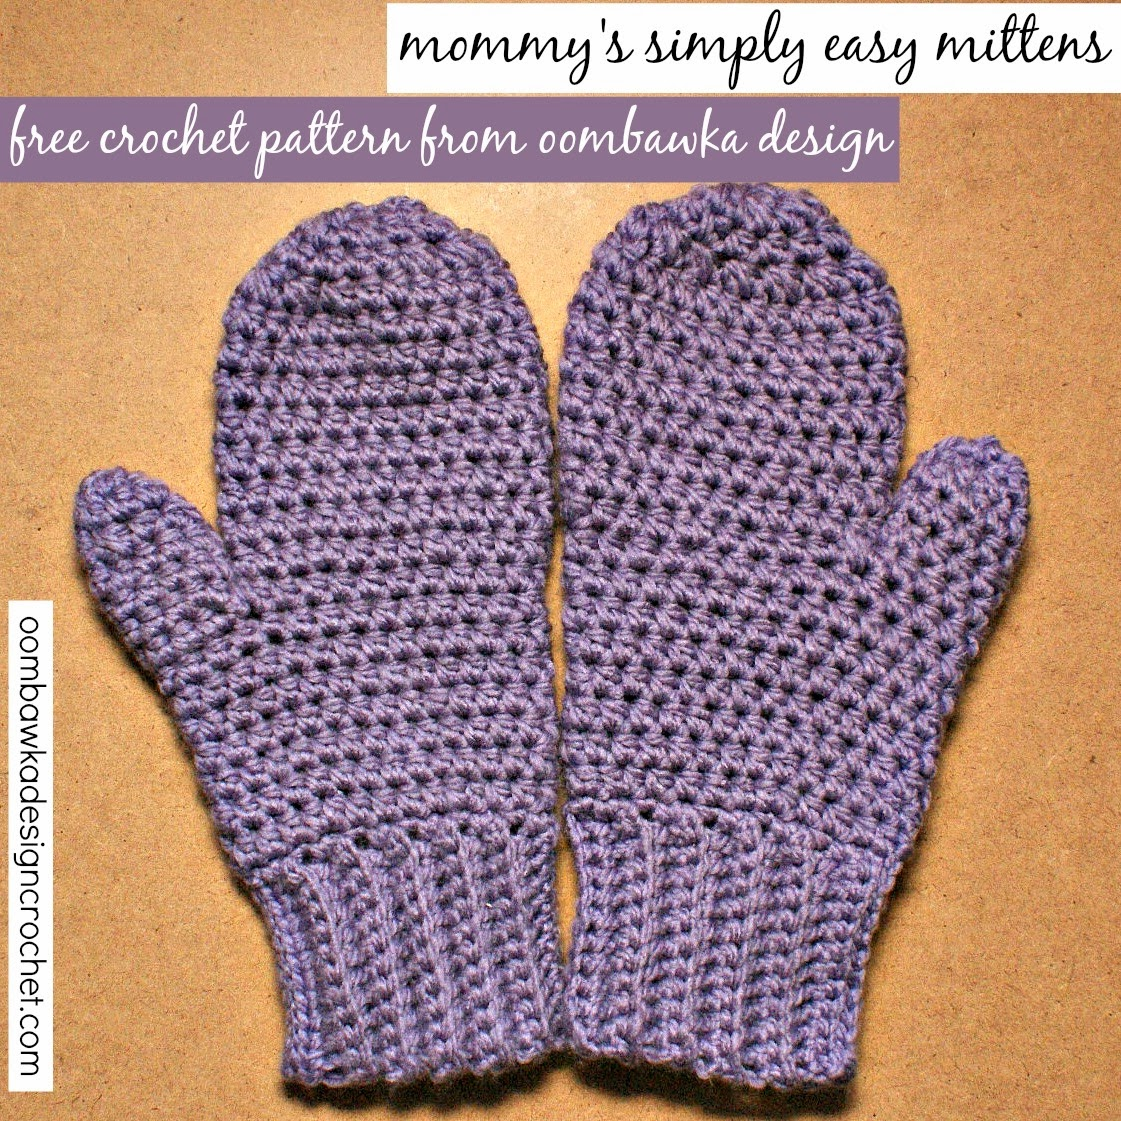 Free Crochet Patterns For Half Finger Mitts New Calendar Template ...